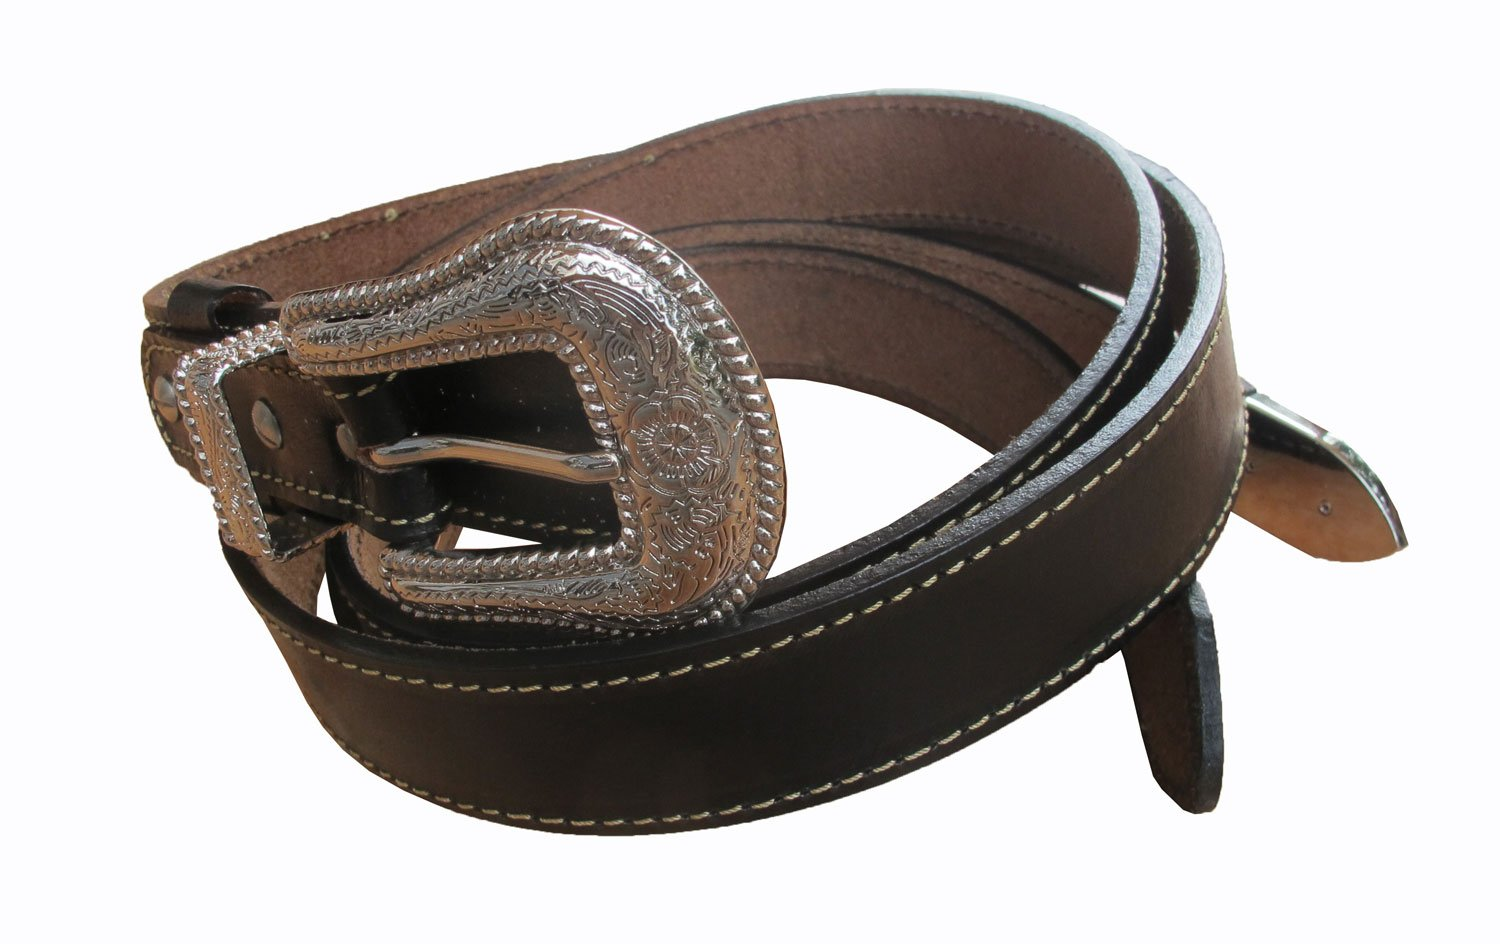 Danai Presents. VERY 6 PCS X NICE BELT @ BUCKLE GENUINE LEATHER SILVER TONE by Thai (Image #2)